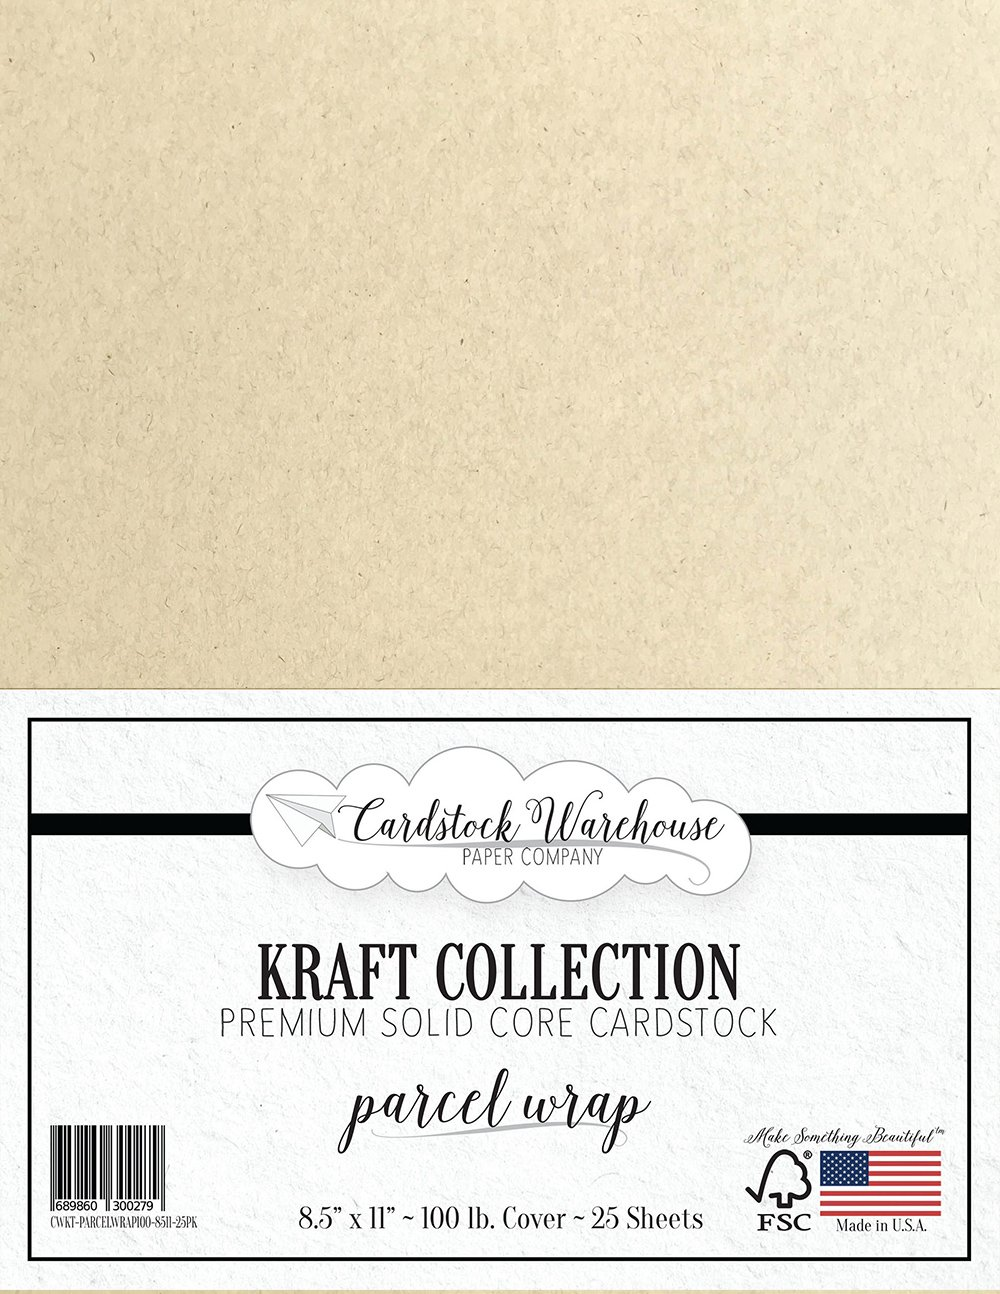 PARCEL WRAP KRAFT Recycled Cardstock from Cardstock Warehouse - 8.5 X 11 - PREMIUM 100 LB. COVER - 25 Sheets French Paper Company 4336867756